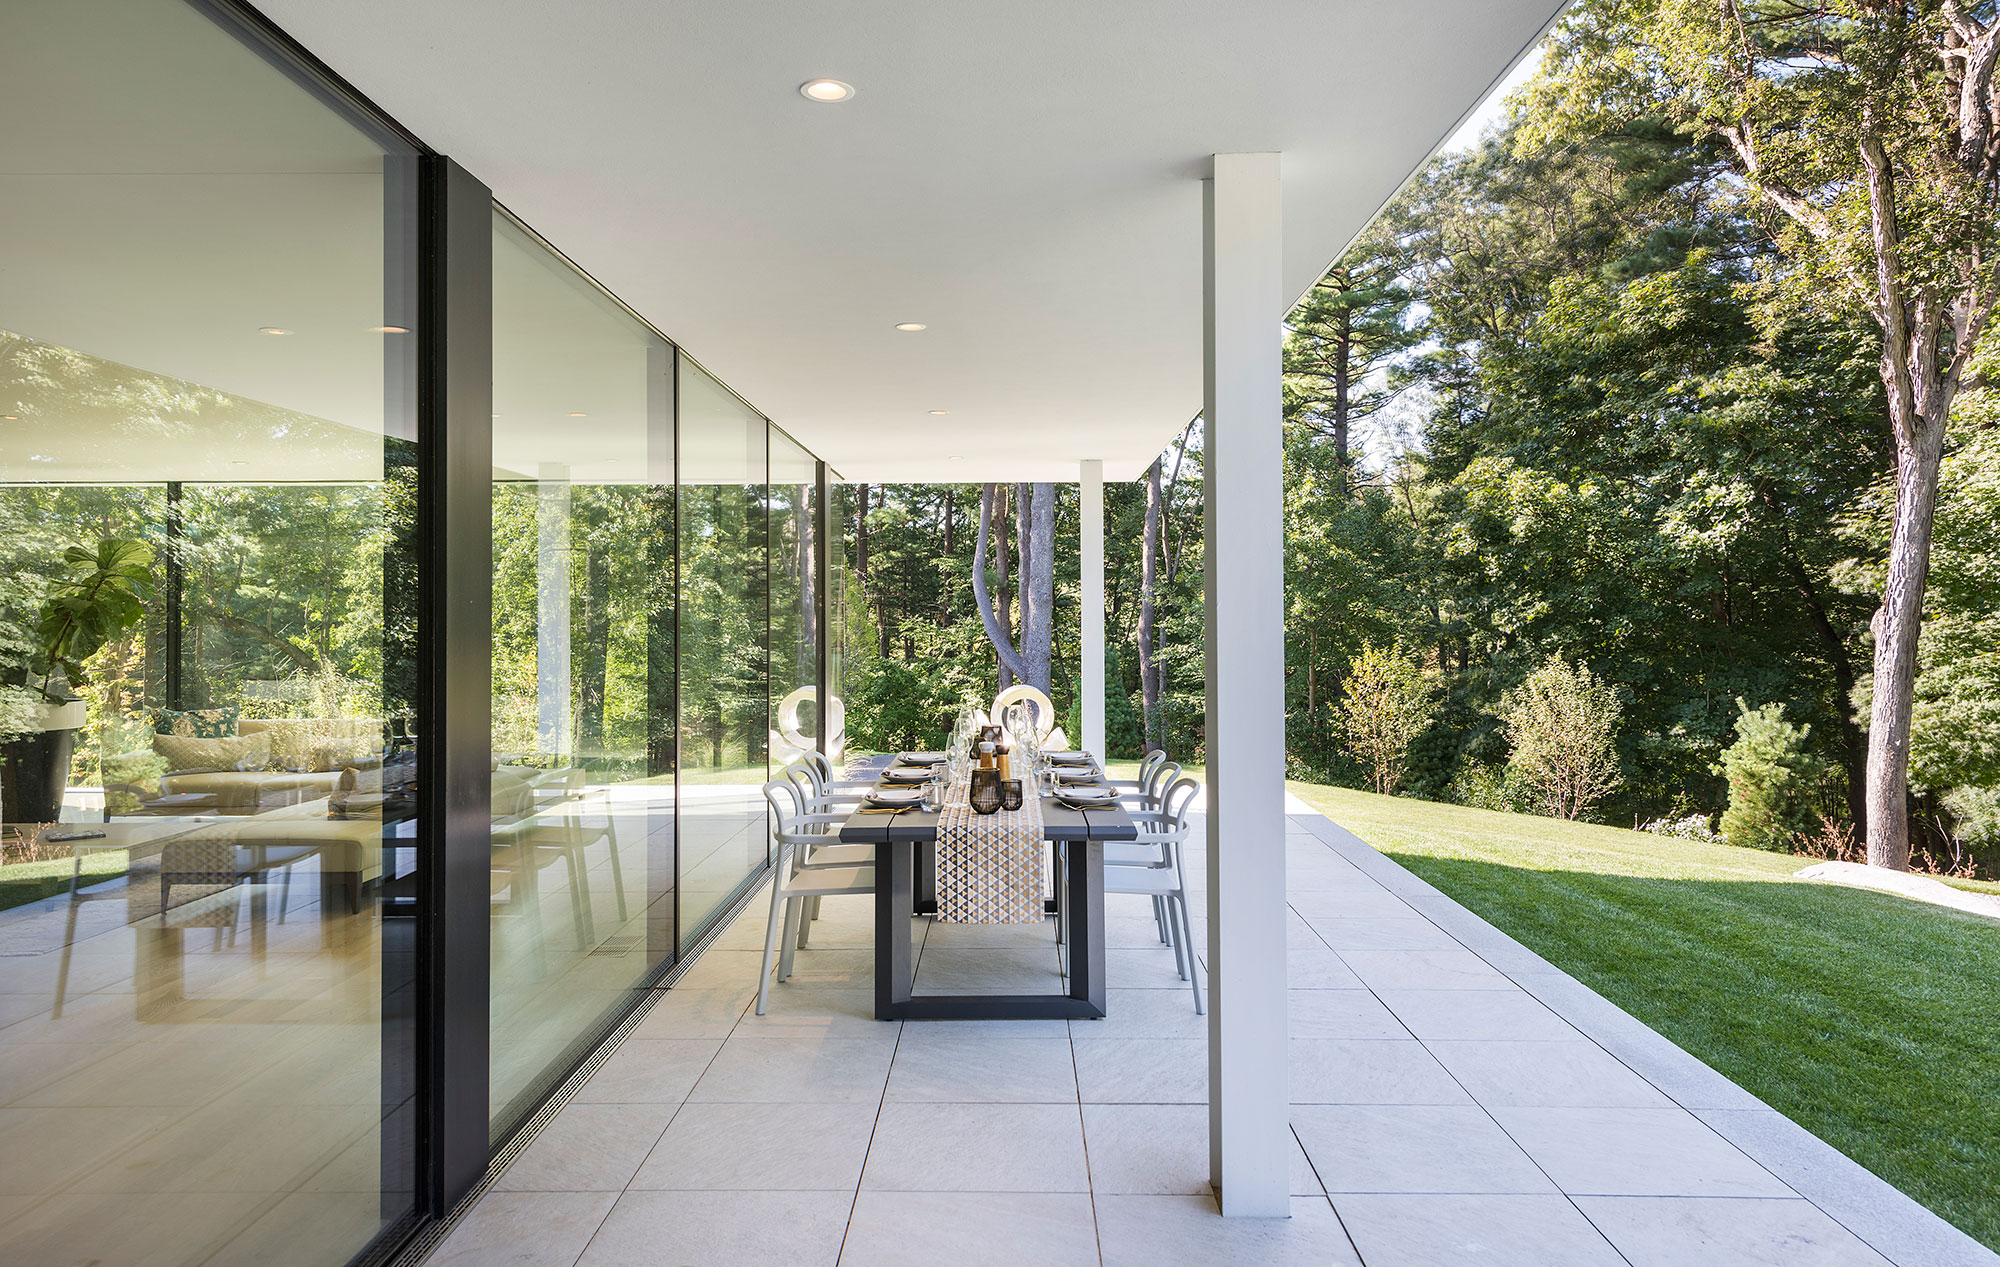 outdoor dining terrace with cantilevered roof